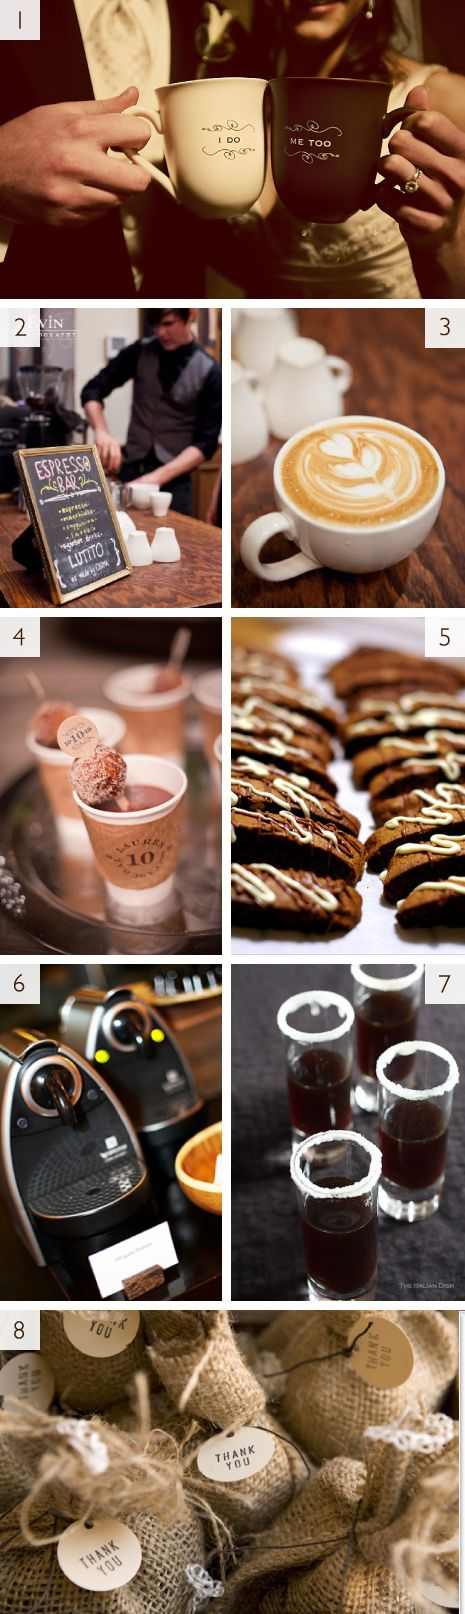 Pin By Occasions In Print On Morning Wedding Ideas